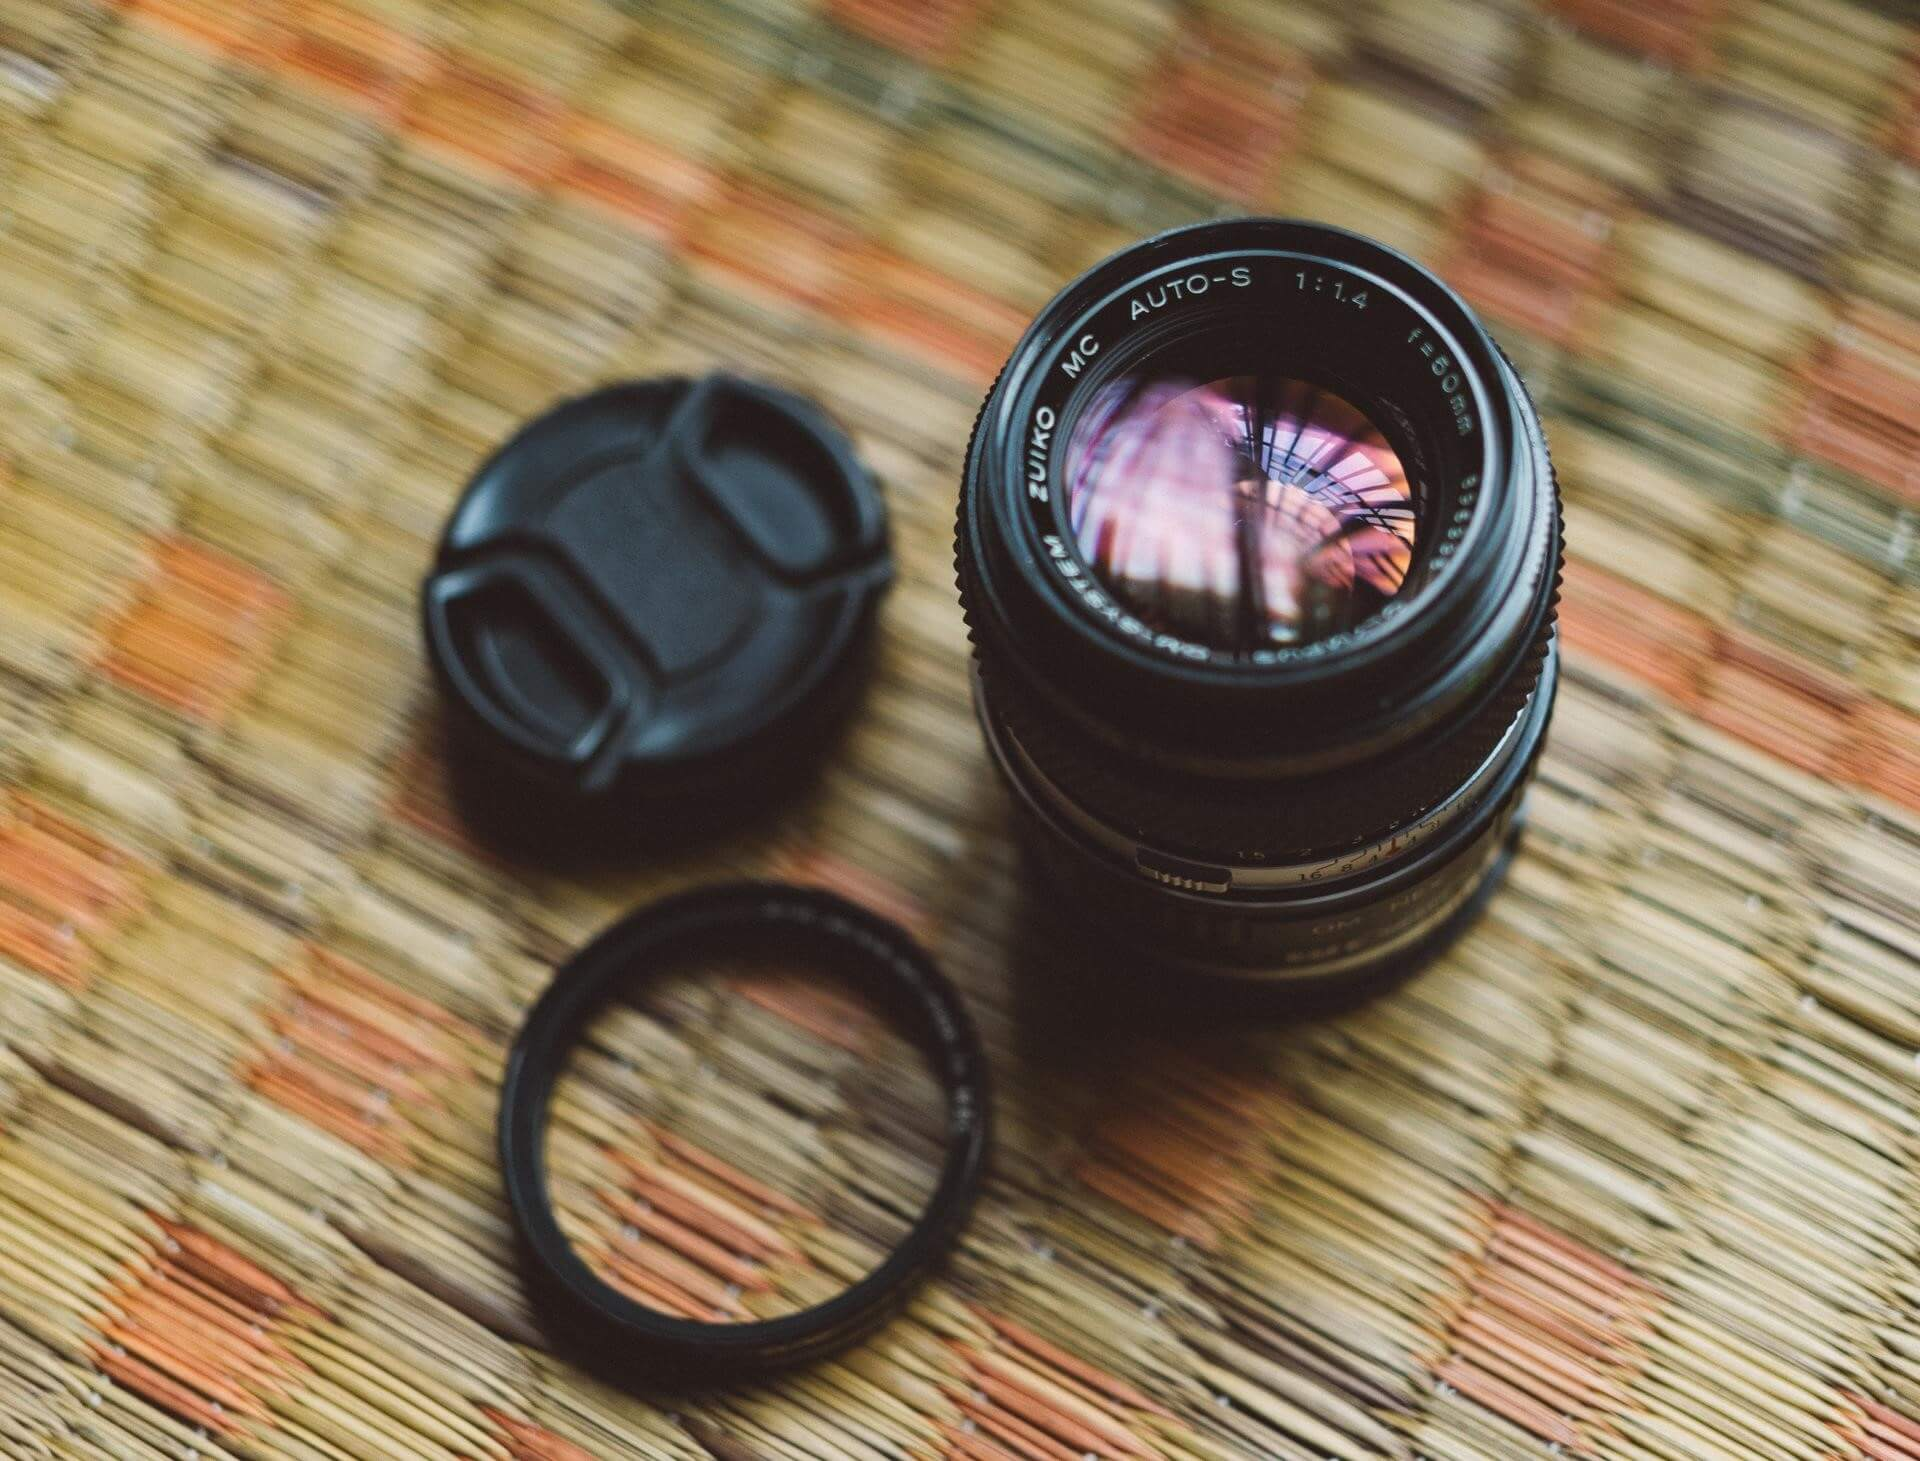 TOTS Family, Parenting, Kids, Food, Crafts, DIY and Travel Essent-Photo-3 Essential Photography Equipment for Family Trips Sponsored TOTS Family Travel  photography dslr